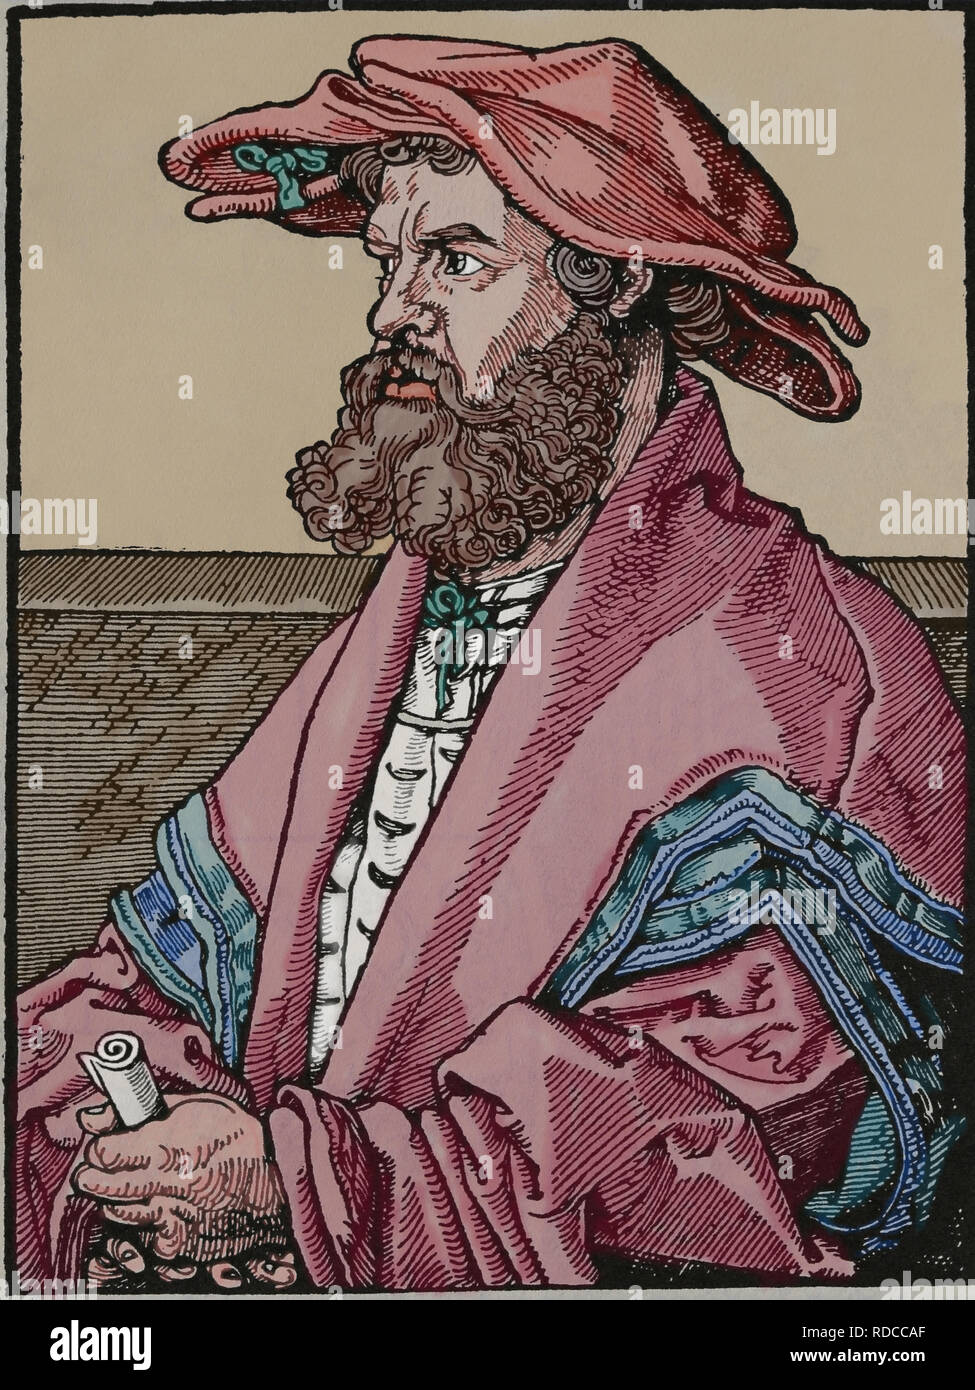 Helius Eobanus Hessus (1488-1540). German Latin poet and later a Lutheran humanist. Engraving by A. Durer, 1526. - Stock Image